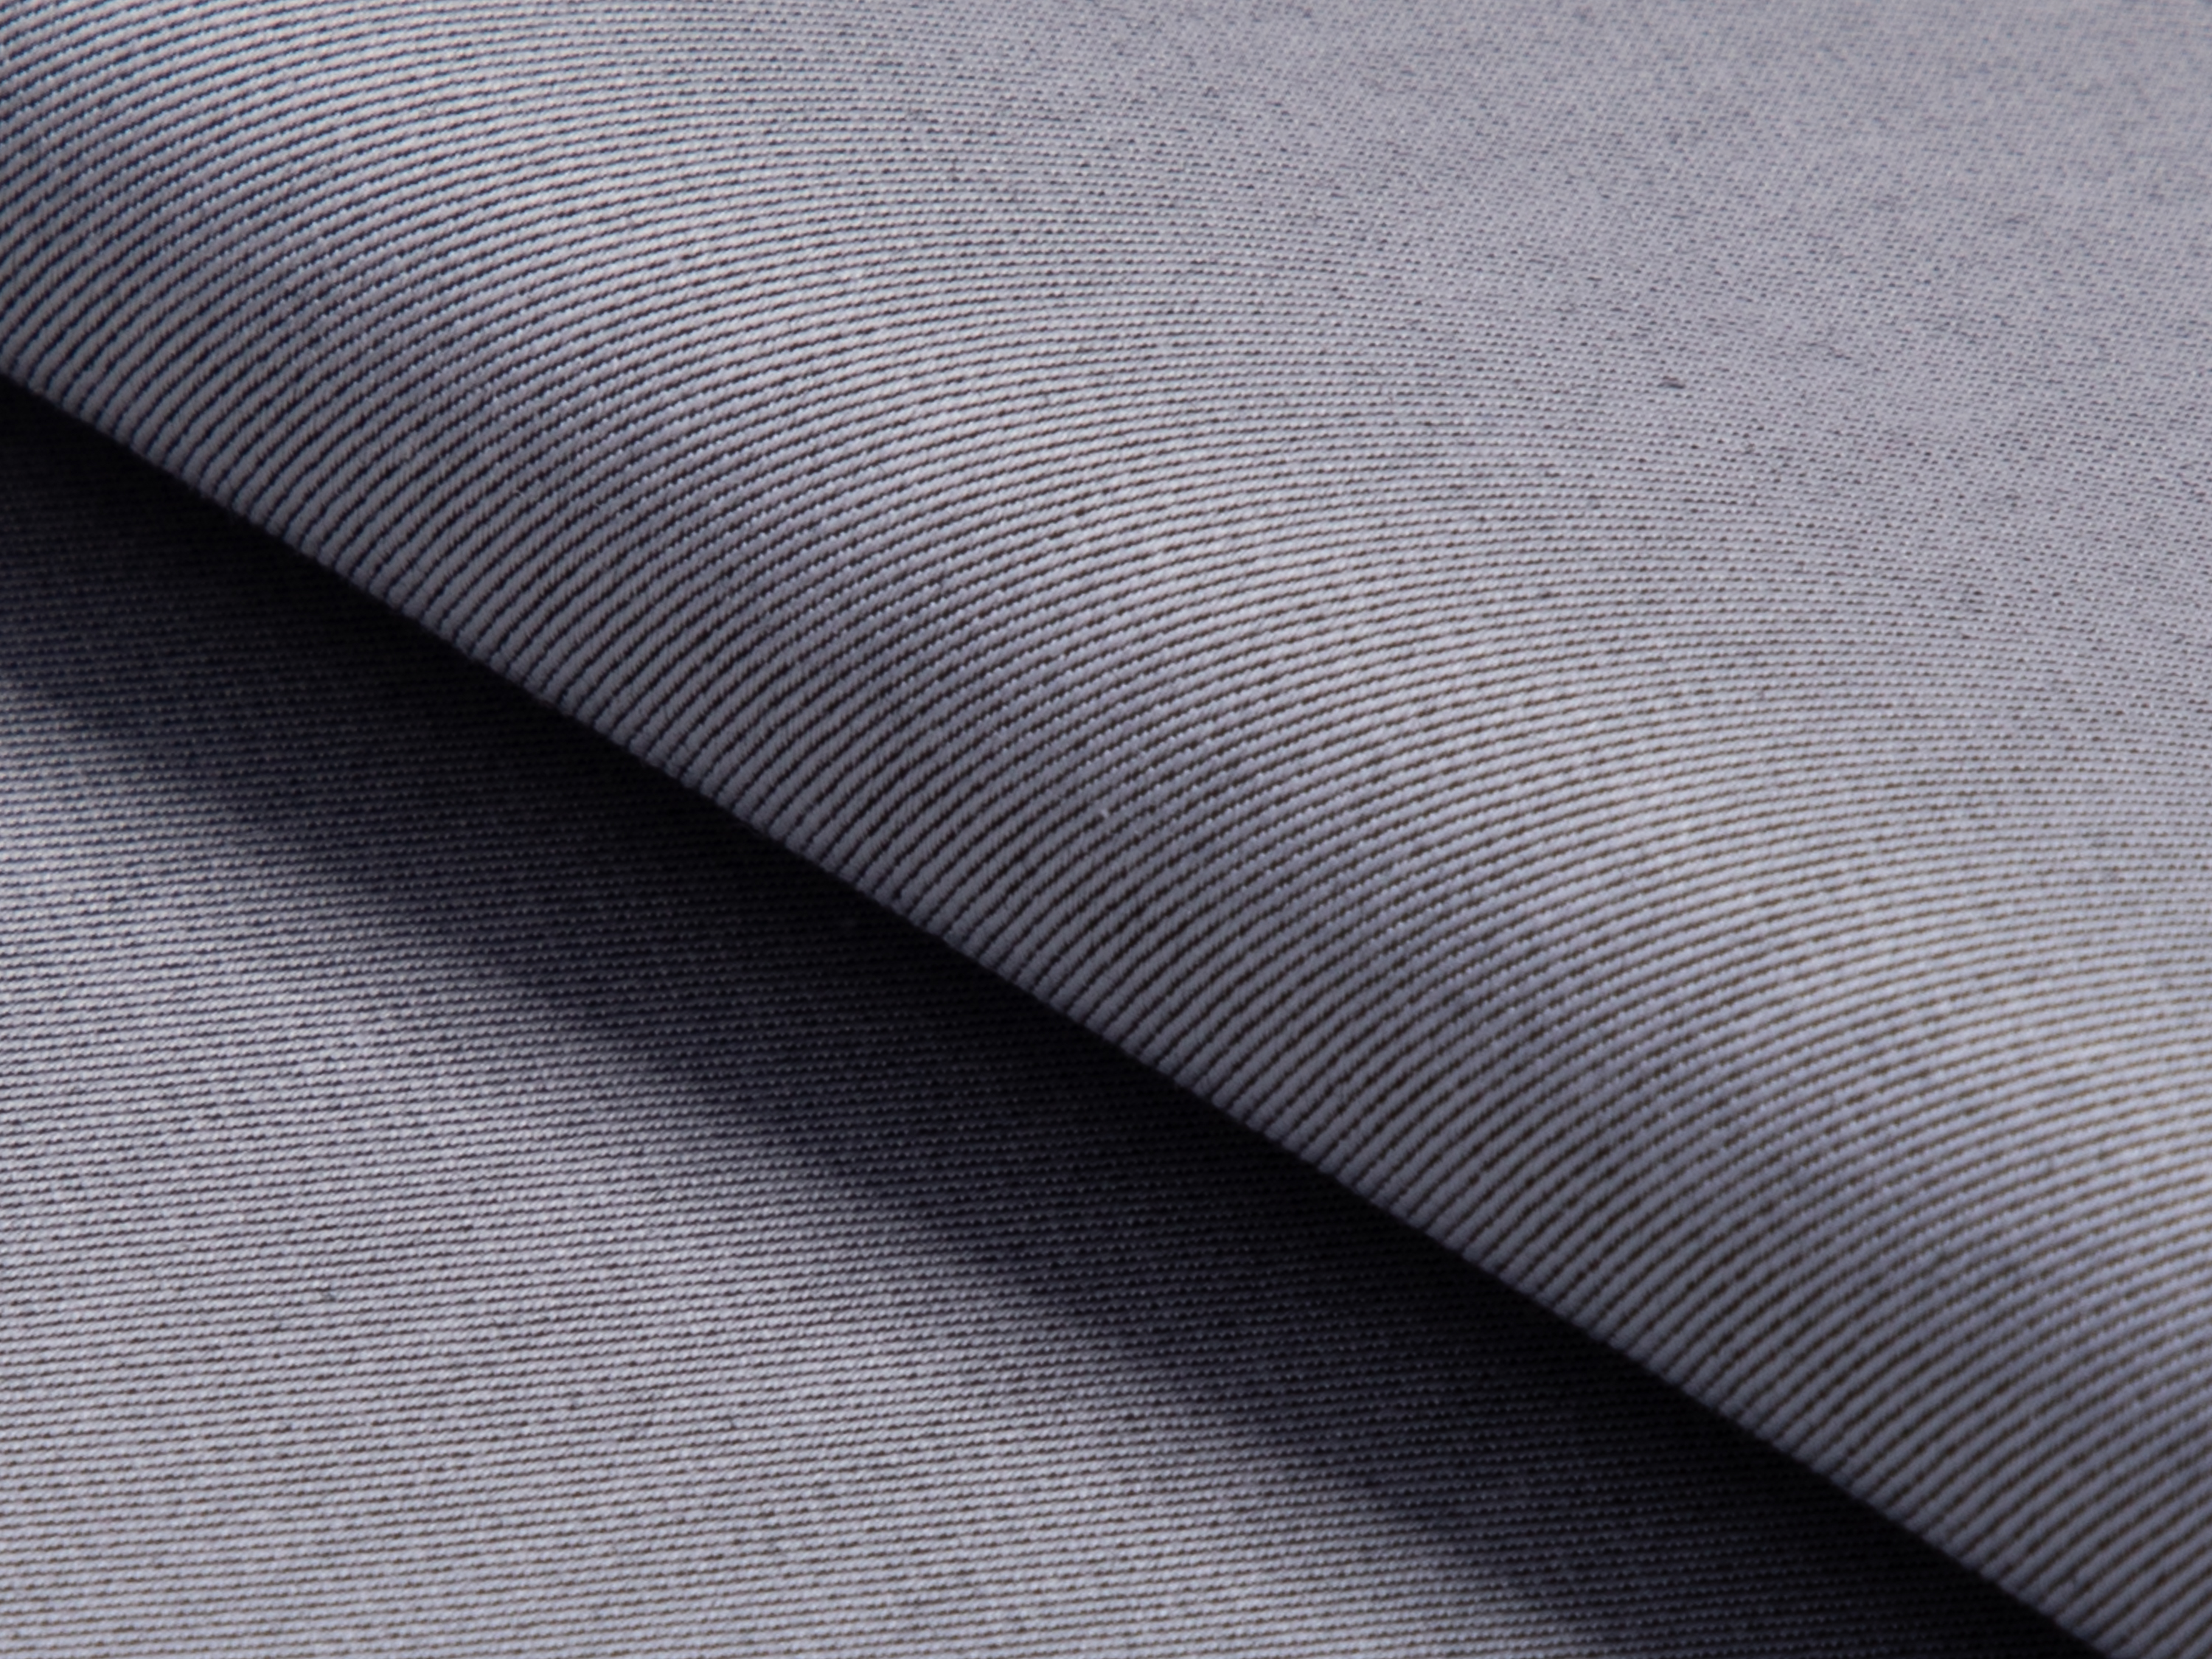 Buy tailor made shirts online - MAYFAIR - Twill Grey